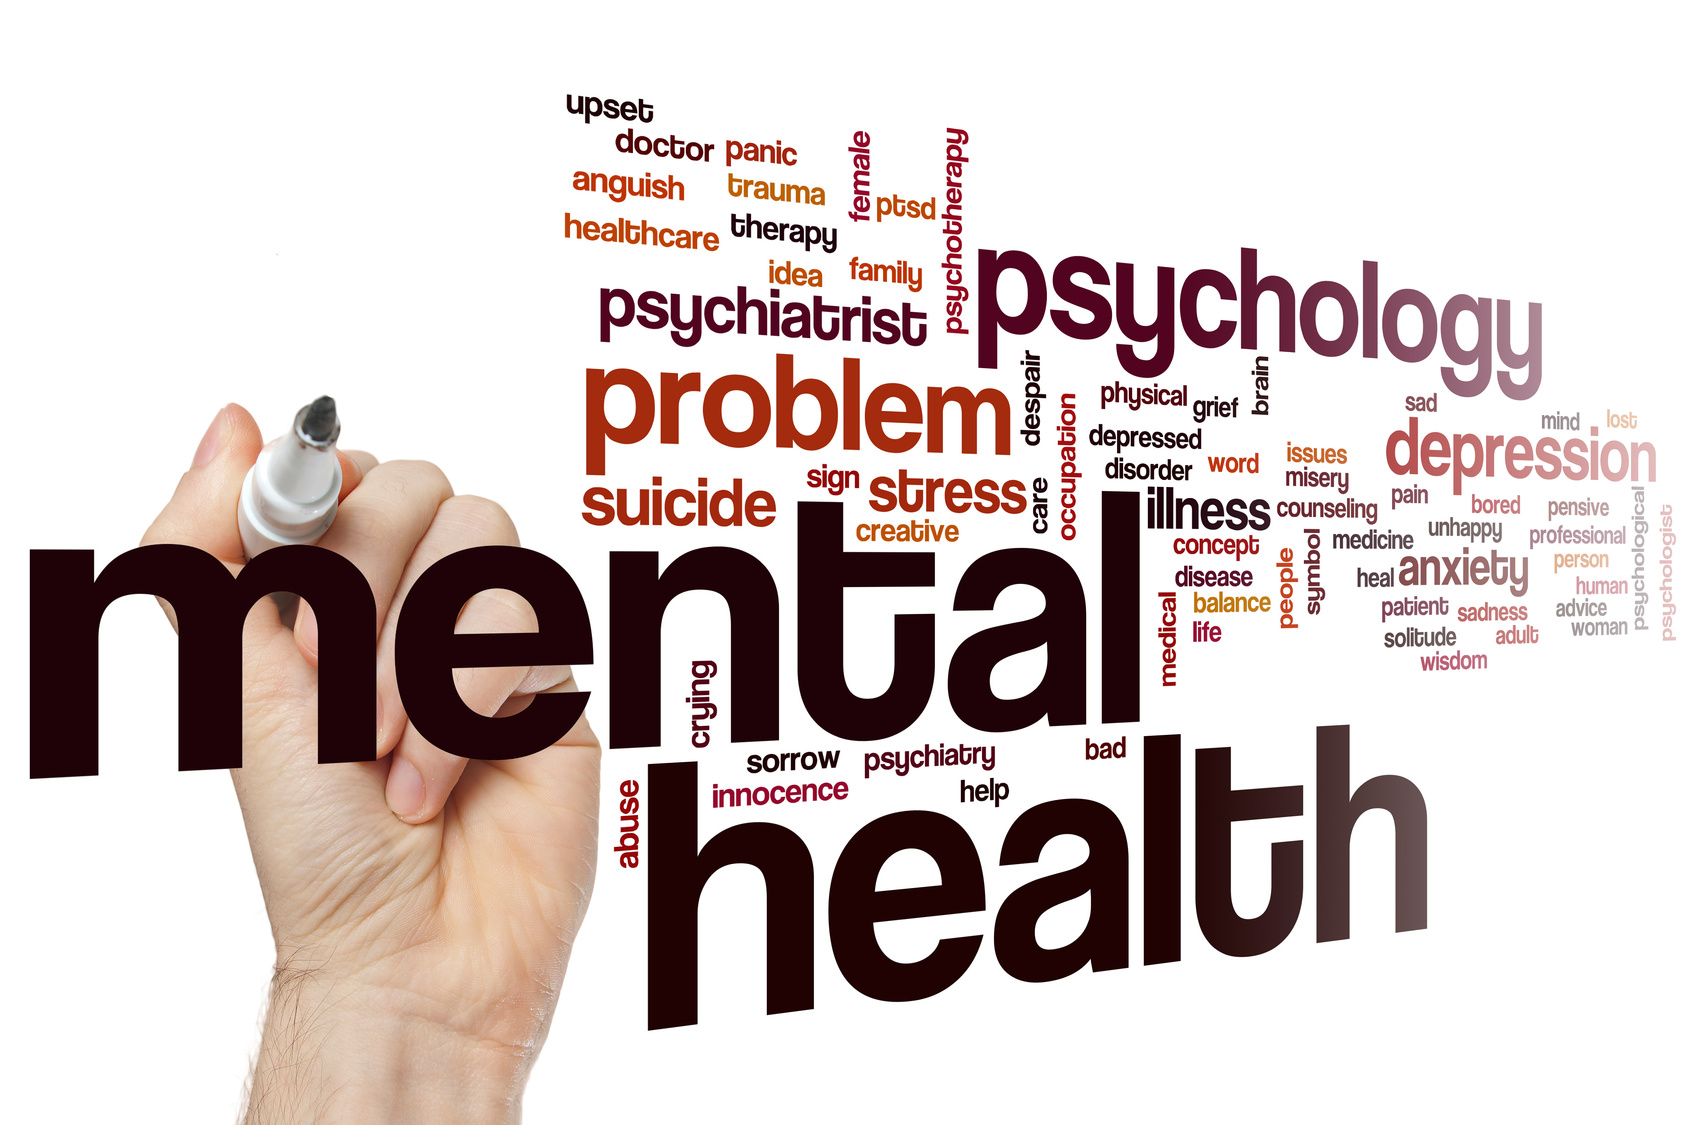 psychology essays on depression Home free essays abnormal psychology/depression there is evidence to suggest that depression runs in families, but a family free from depression can have a depressed person amongst them.